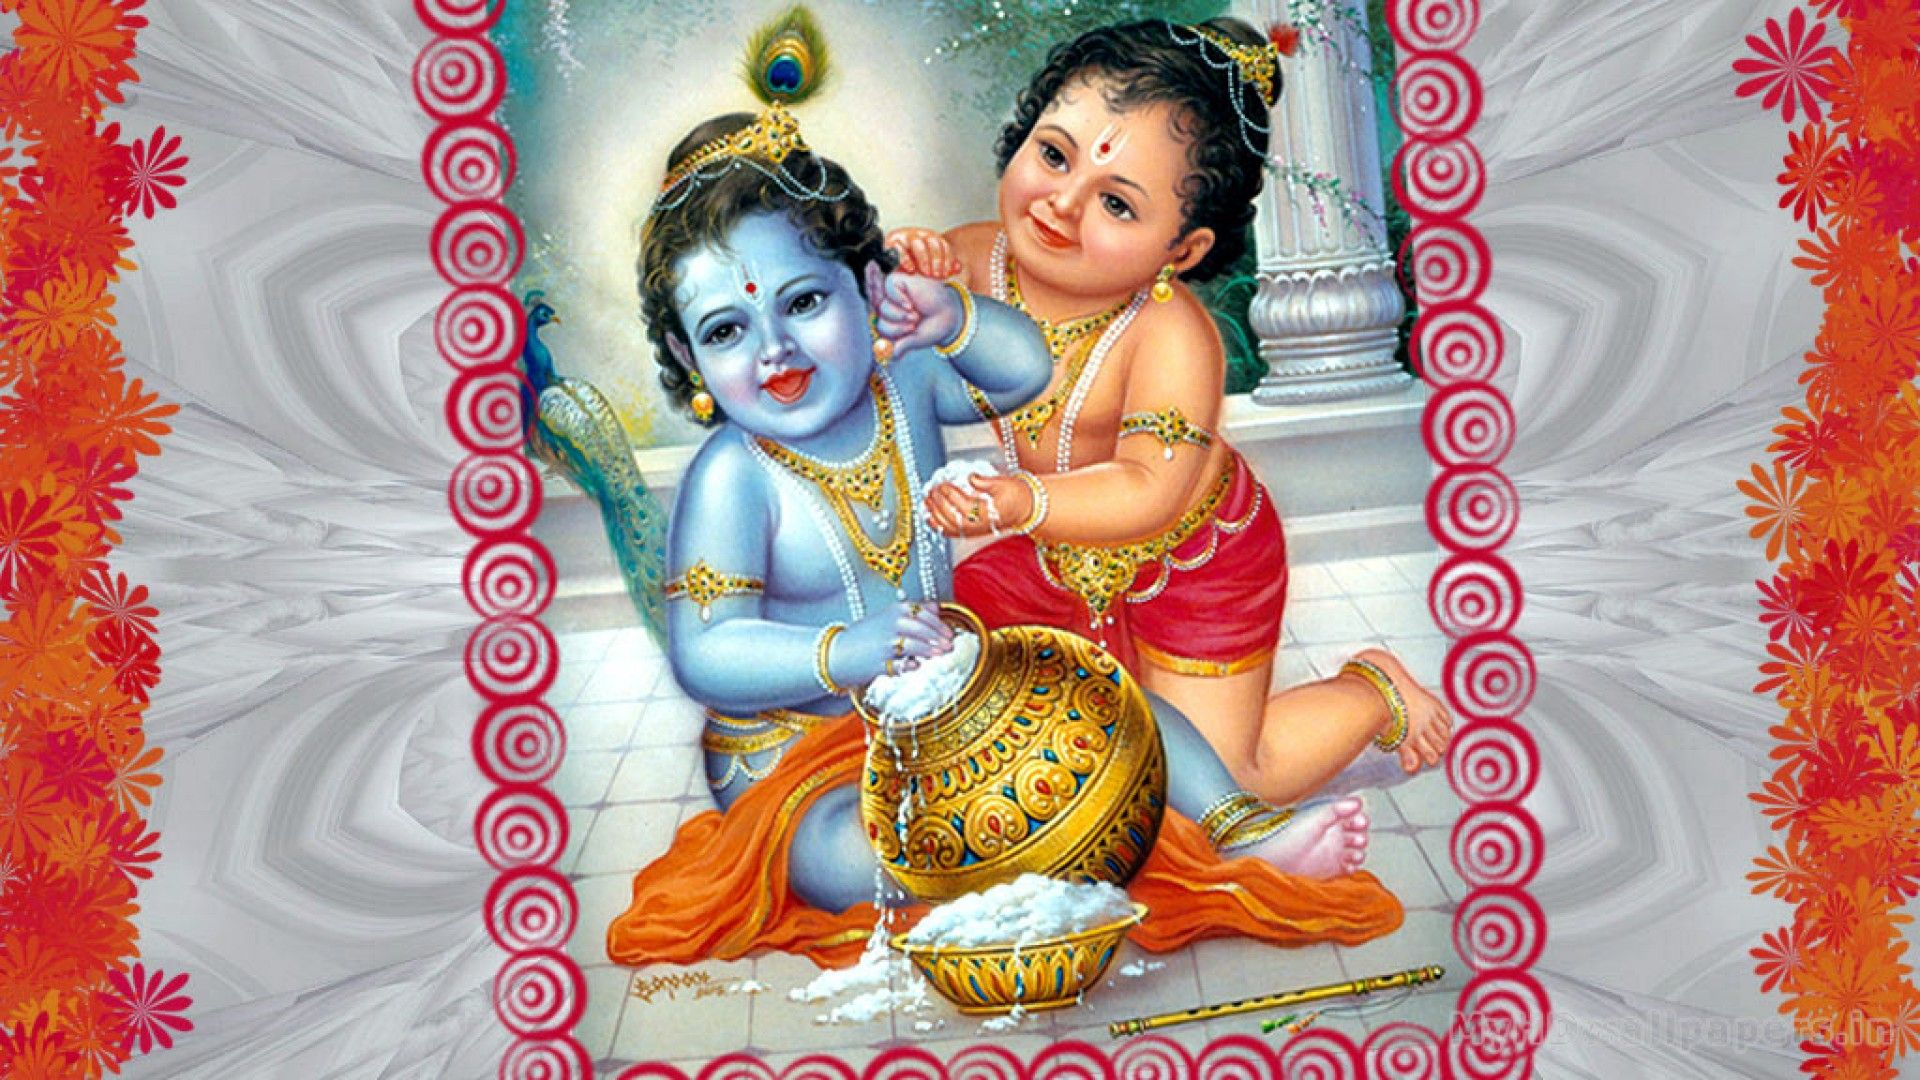 Click Here To Download In Hd Format Lord Krishna And Balram Wallpaper Http Www Superwallpapers In Wallpap Lord Krishna Wallpapers Bal Krishna Lord Krishna